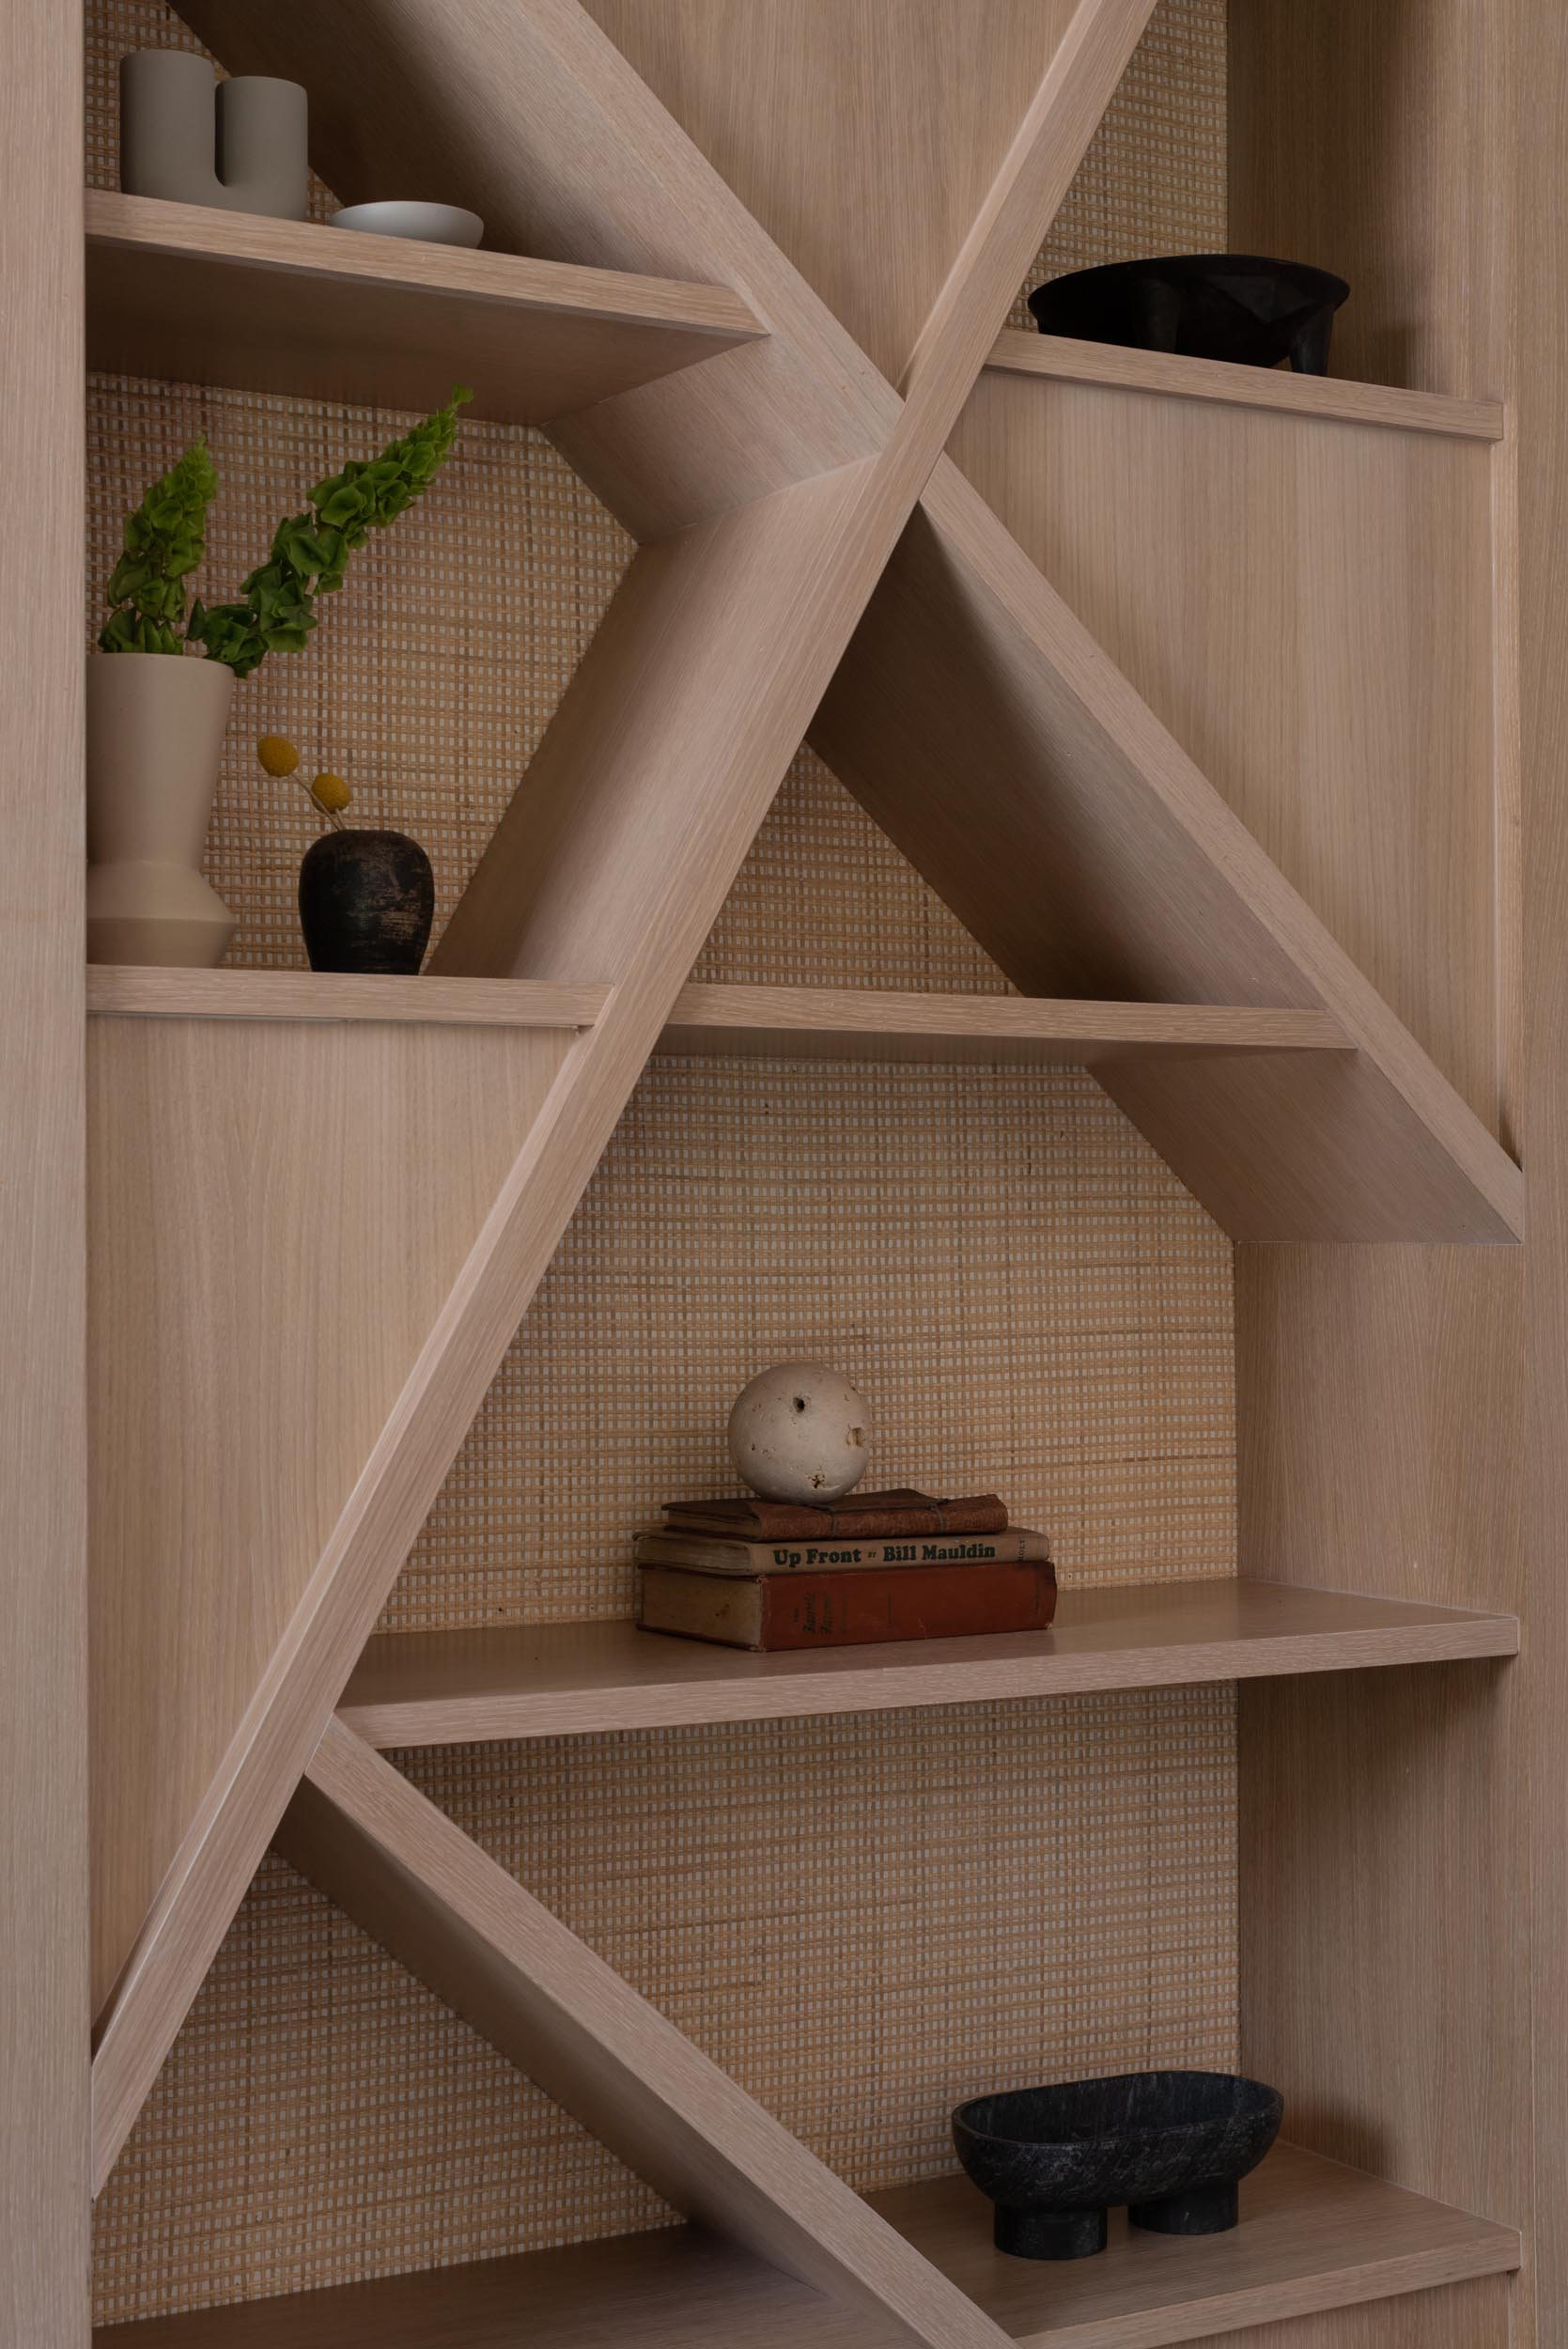 A modern shelving unit with a natural cane backing.